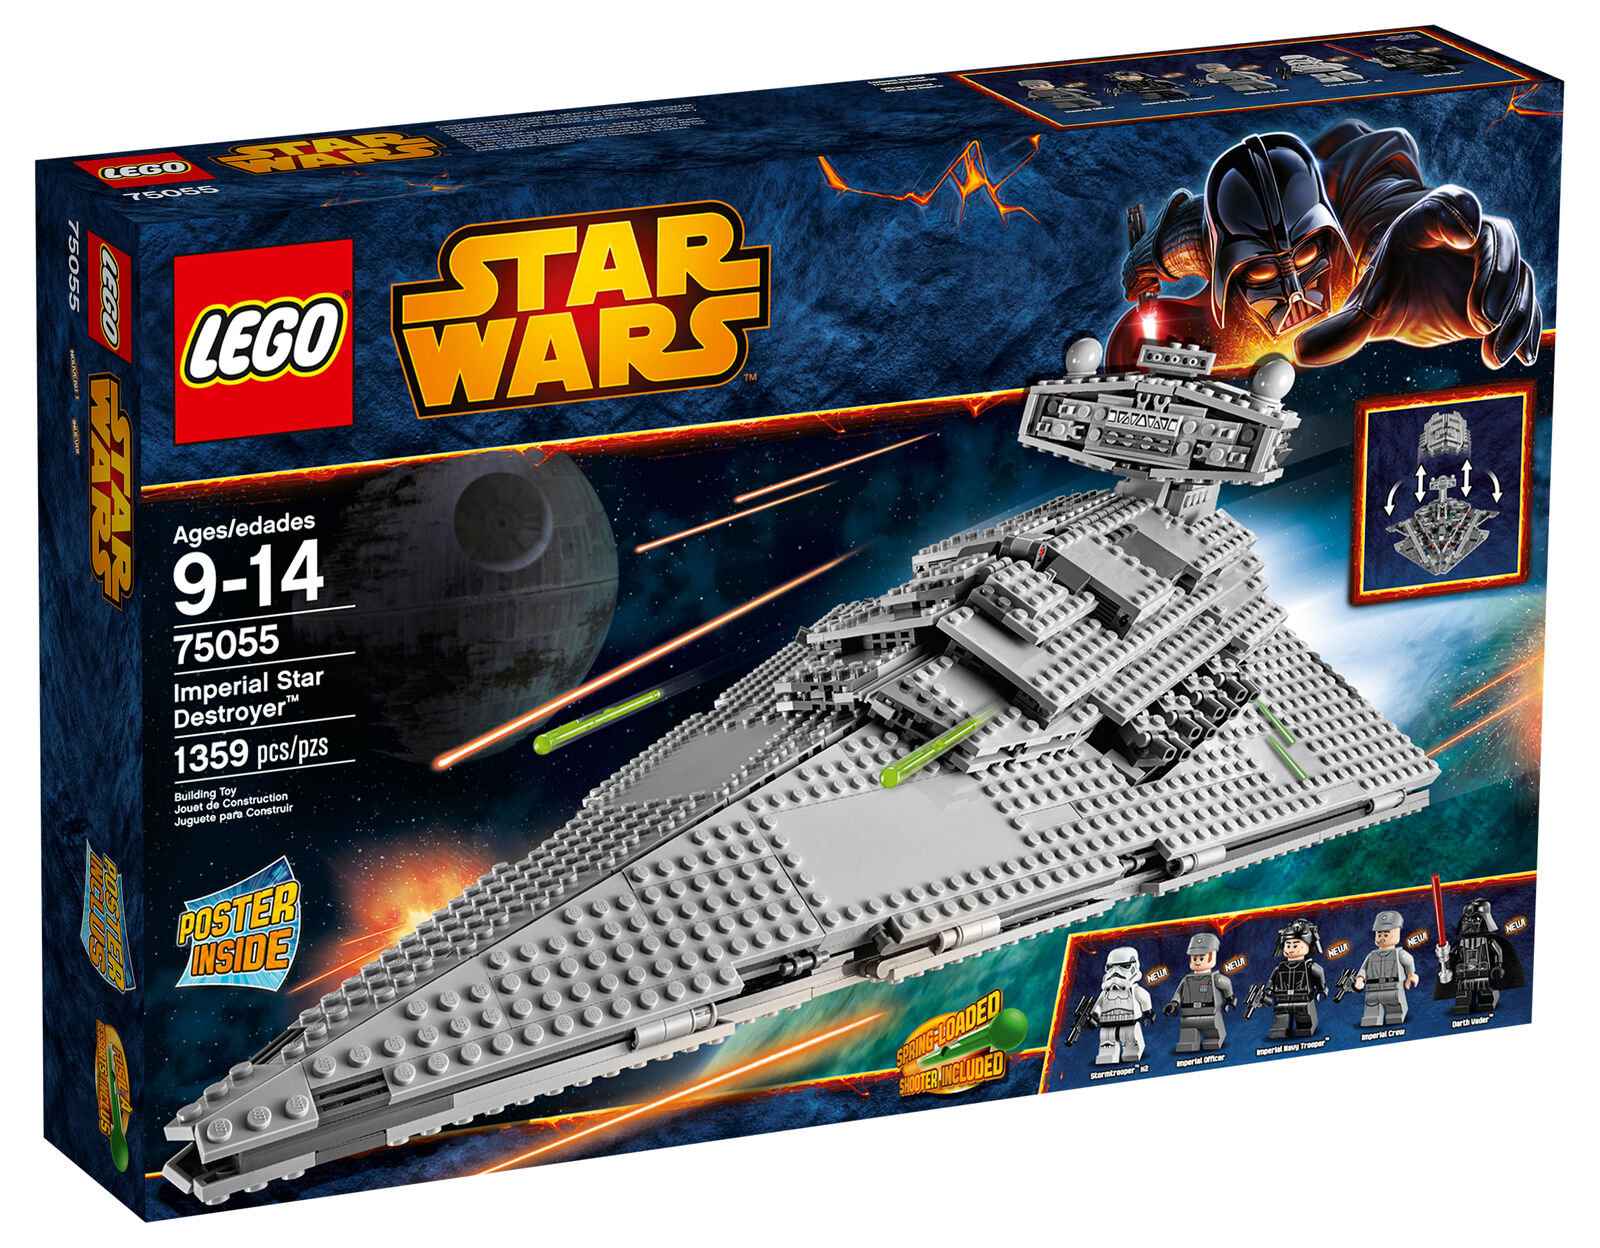 Lego Star Wars Wars Wars 75055 Imperial Star Destroyer neu und ovp 439891